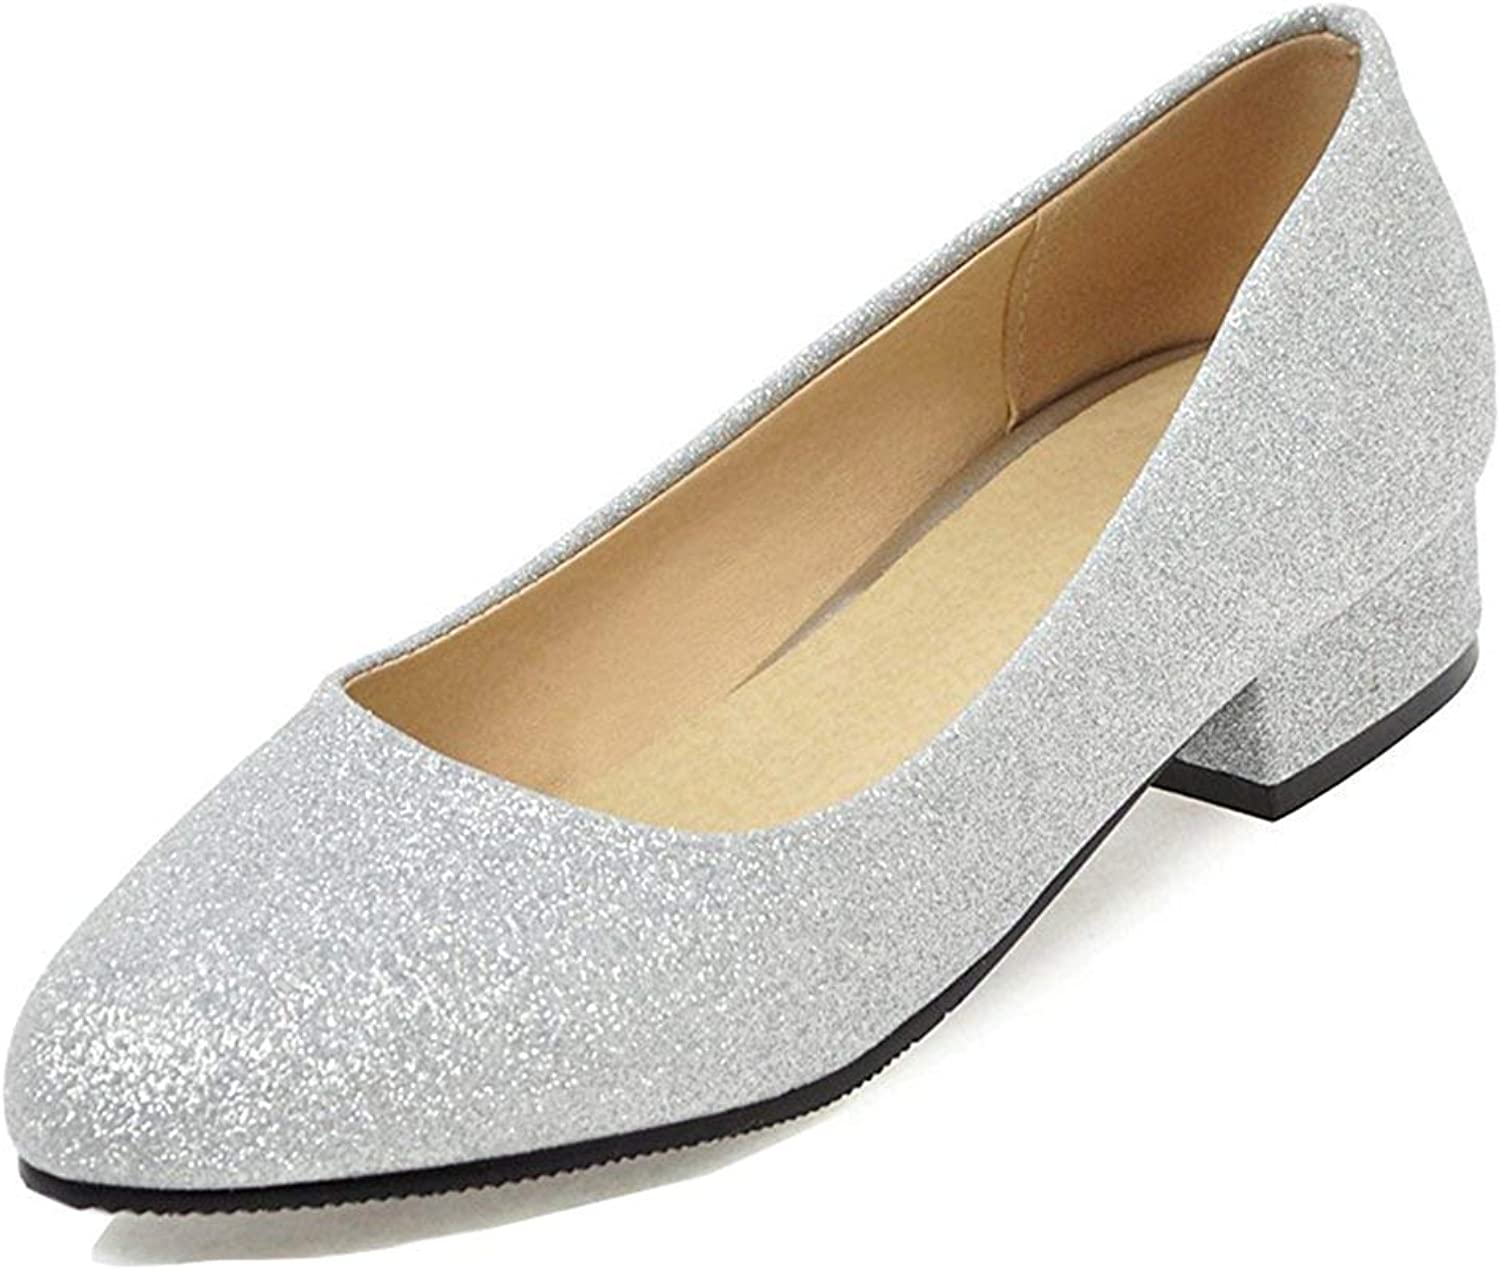 Unm Women's Pointy Toe Pumps - Glitter Sequined Block shoes - Comfort Low Cut Low Heels